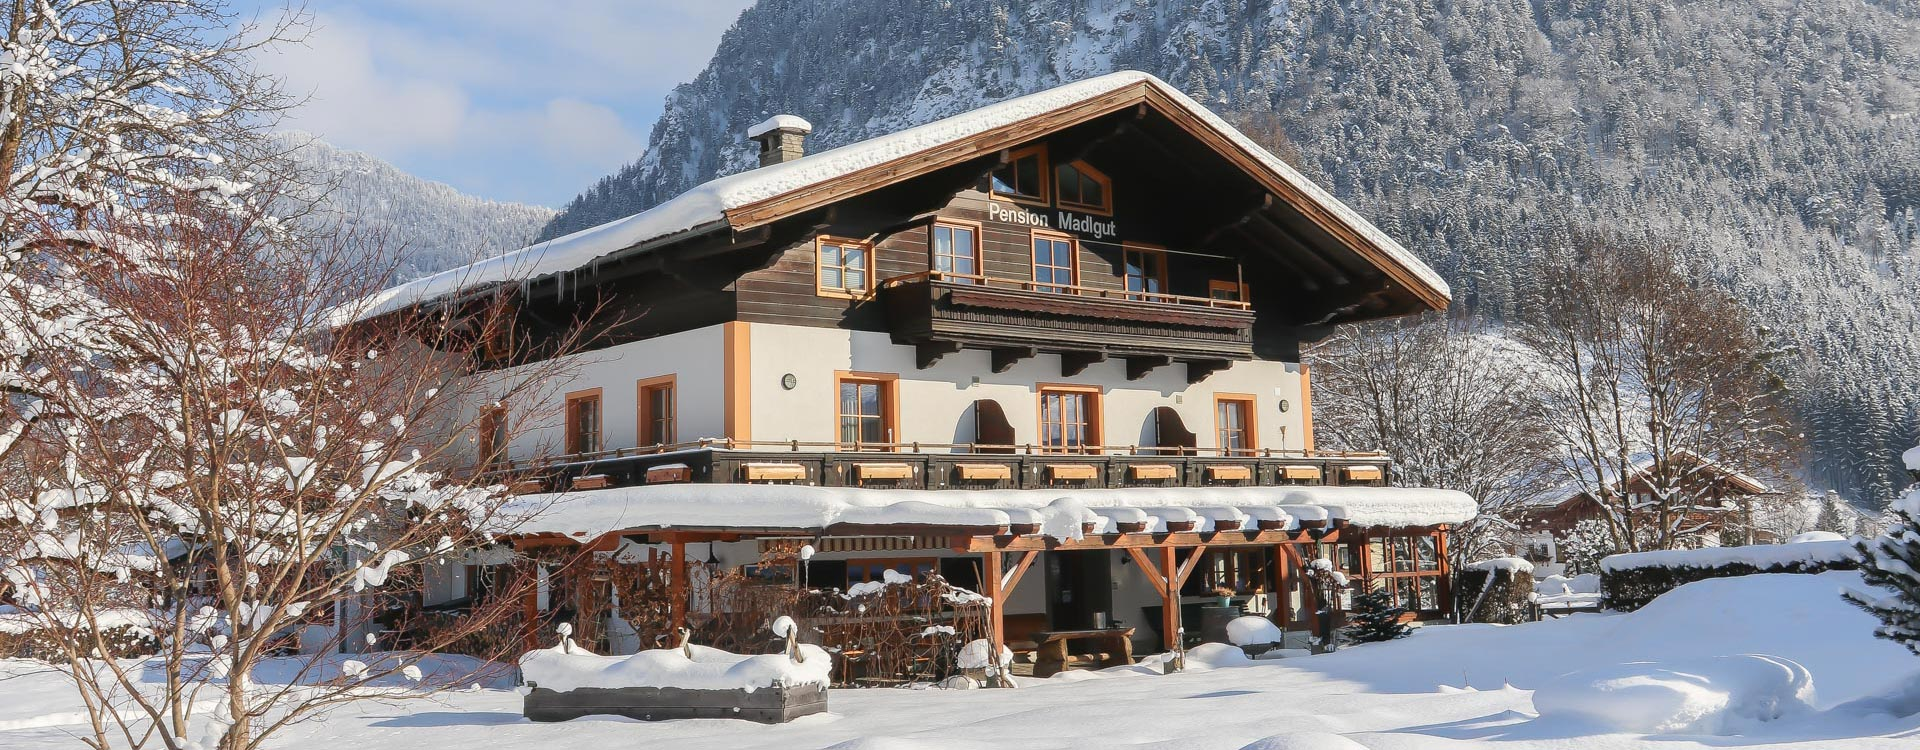 Hotel Pension Lofer Winter